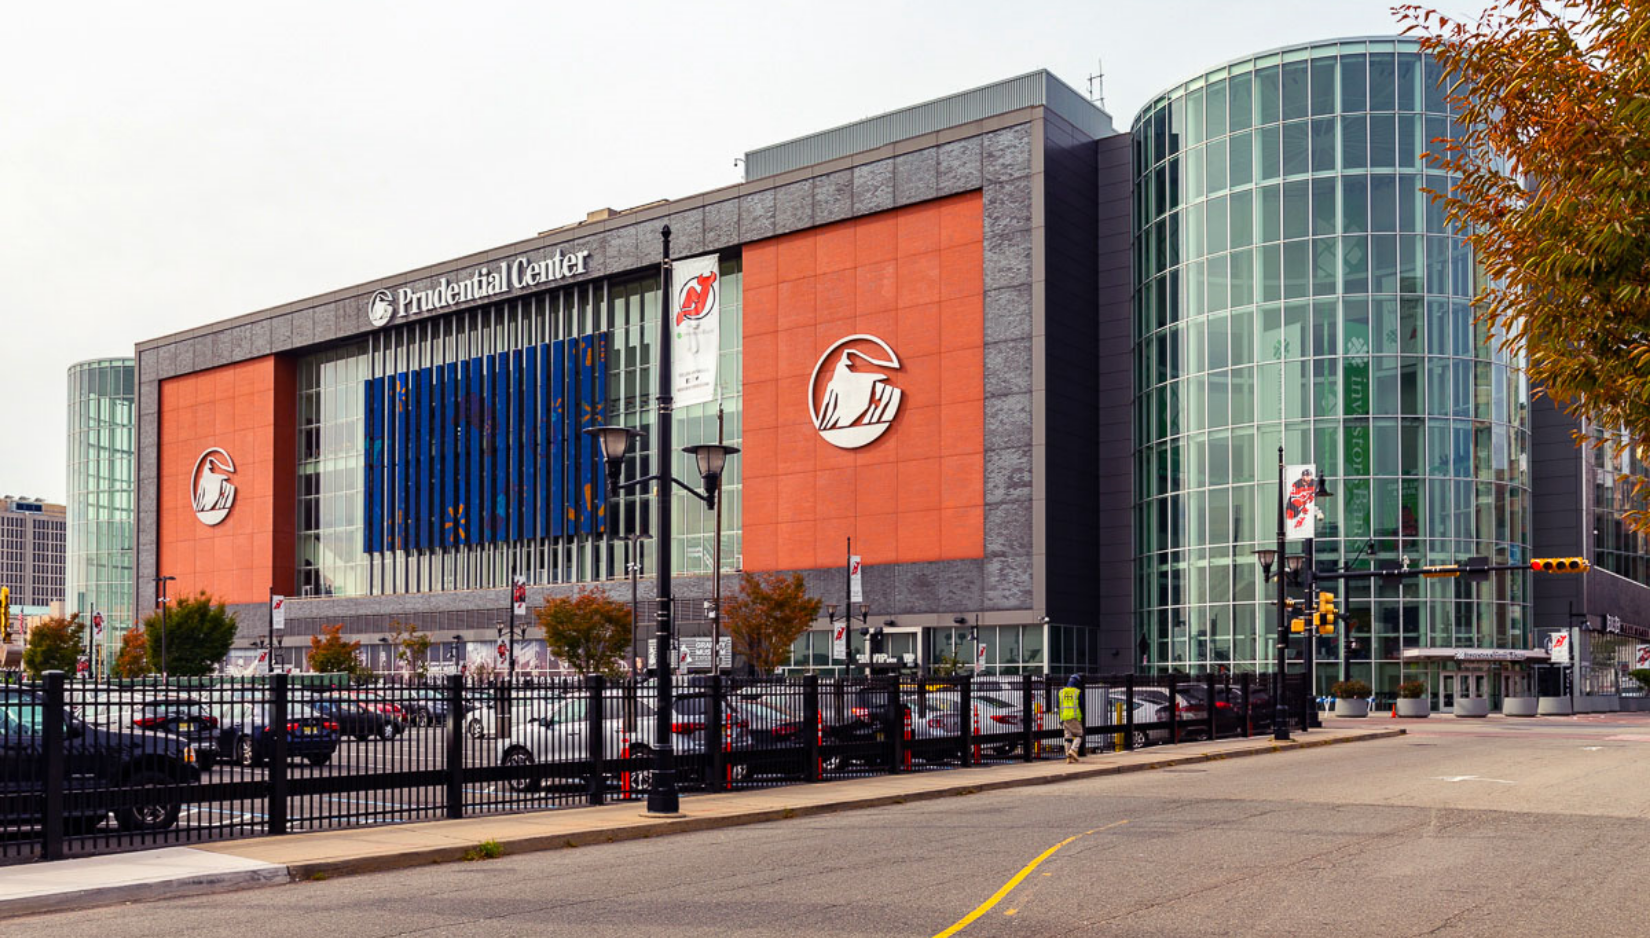 Exterior and parking lot of Prudential Center